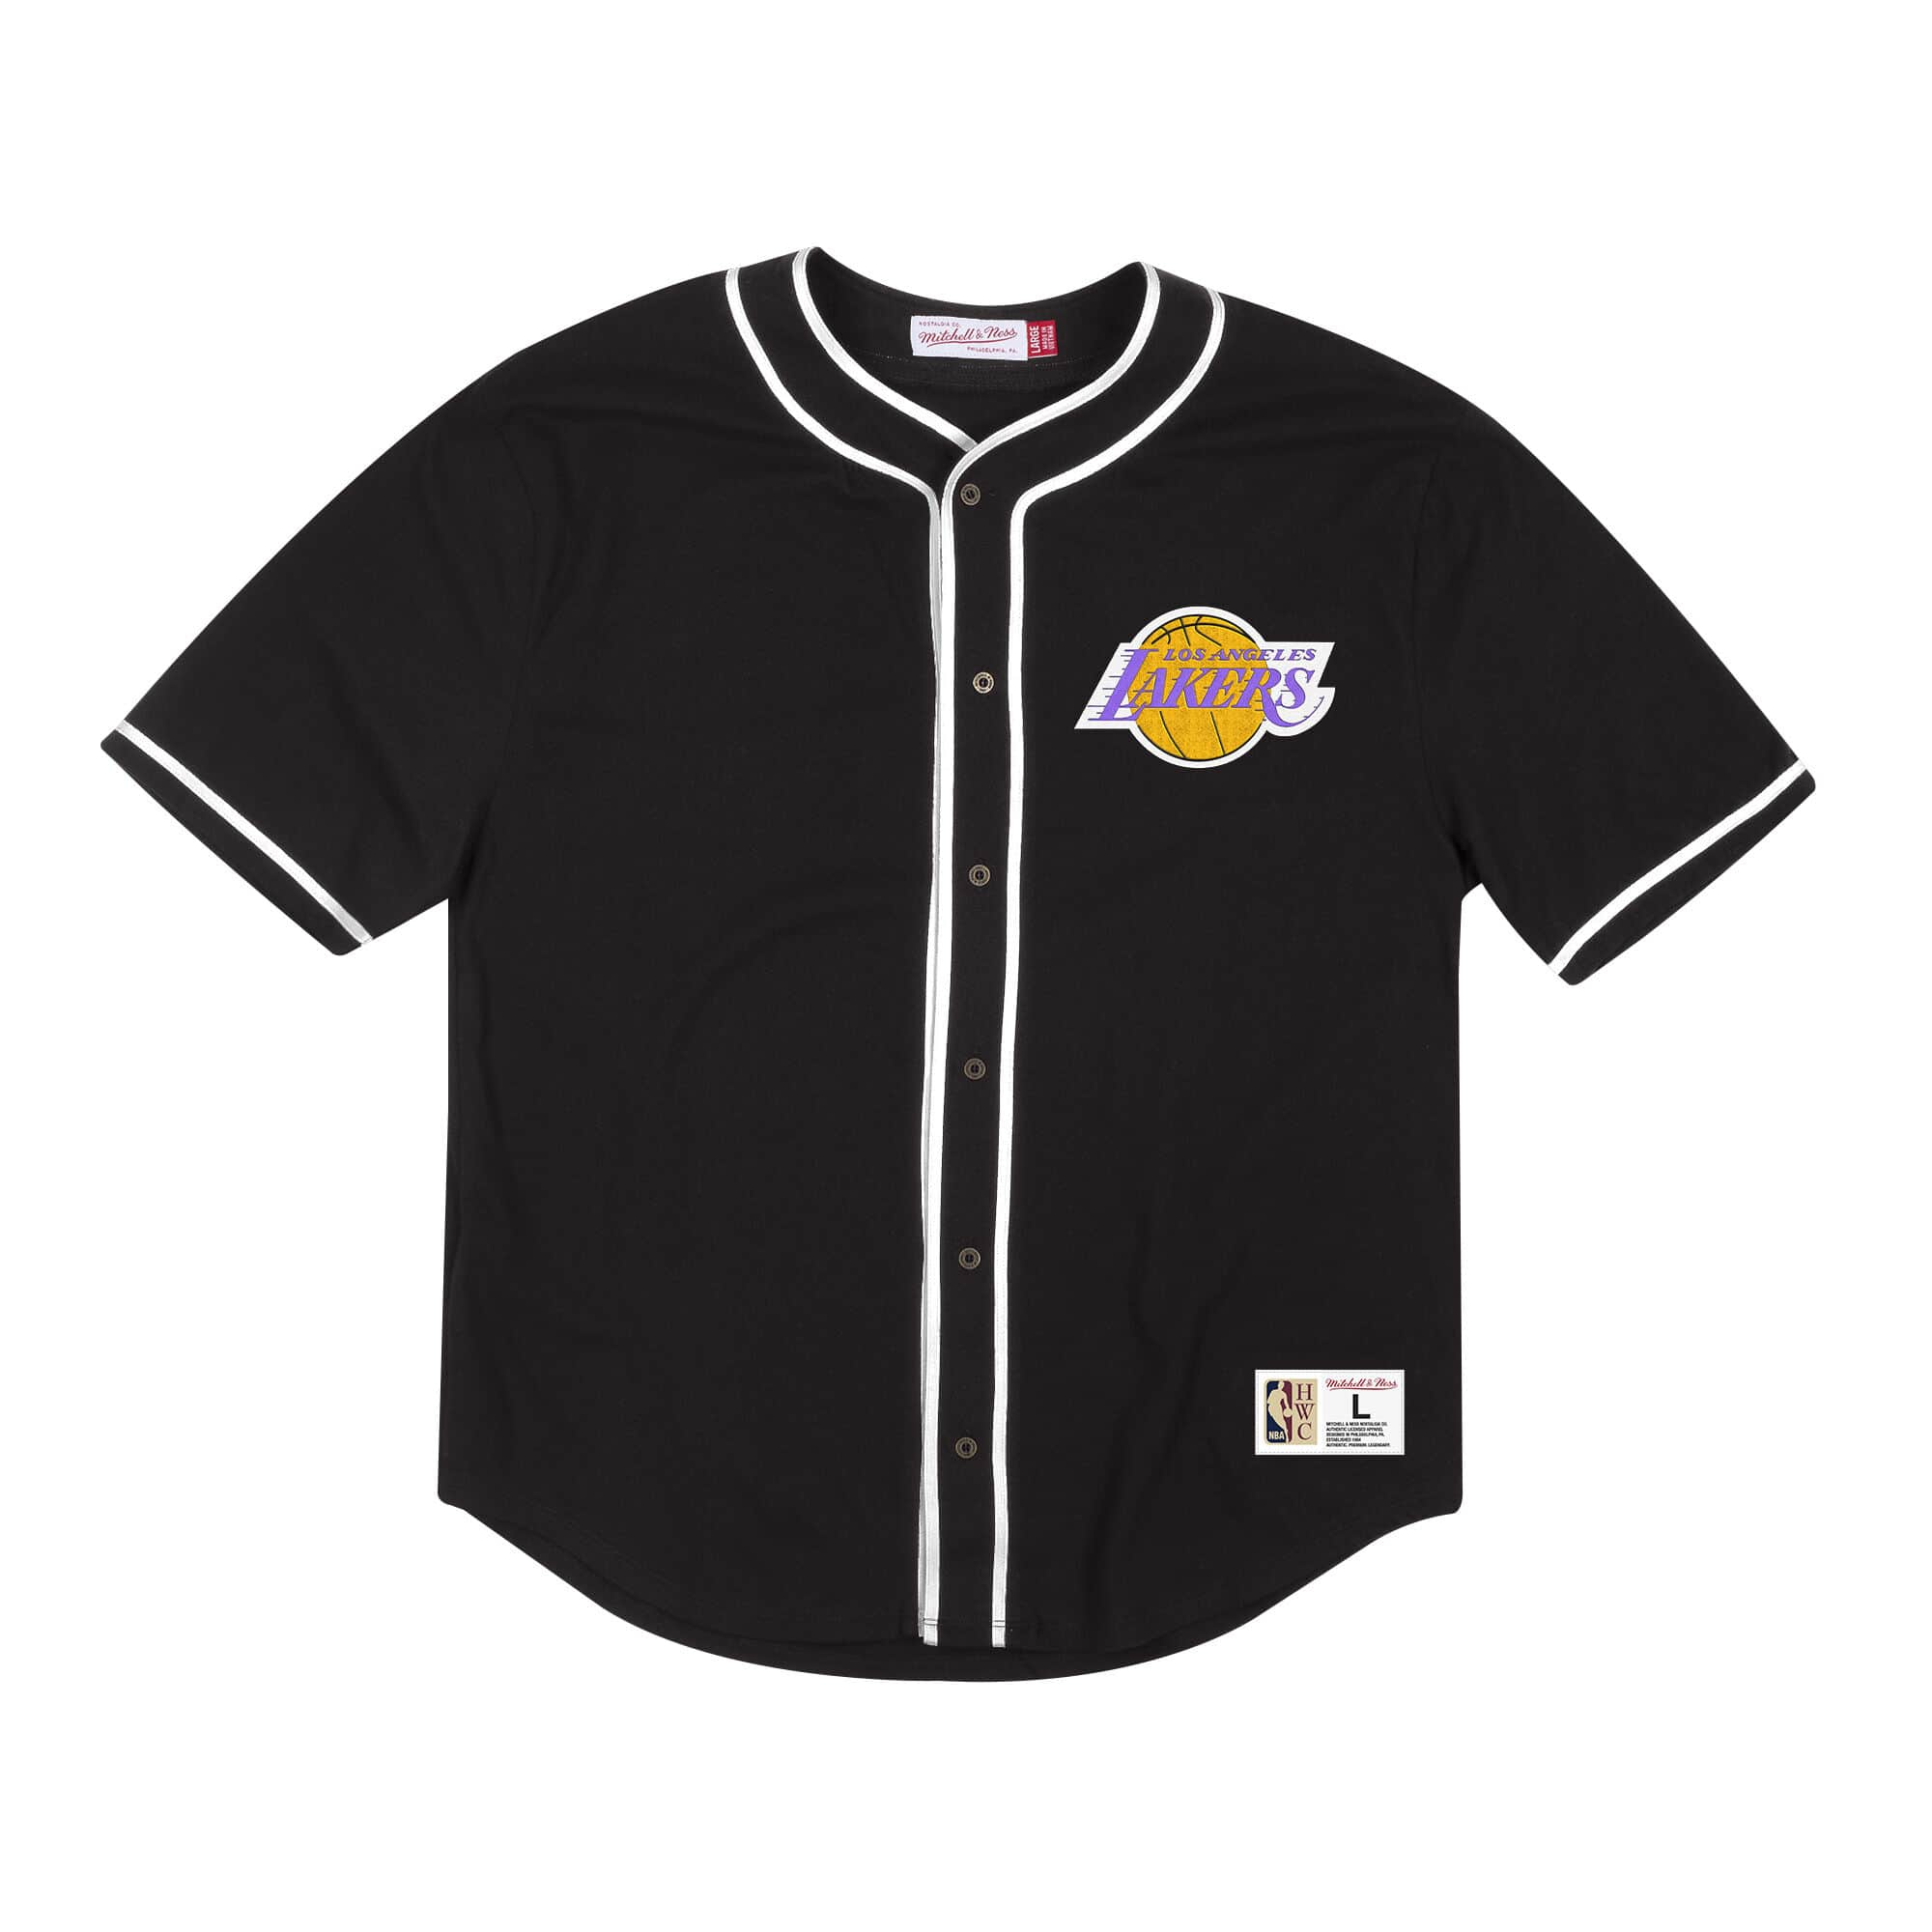 MITCHELL & NESS COTTON BUTTON LOS ANGELES LAKERS